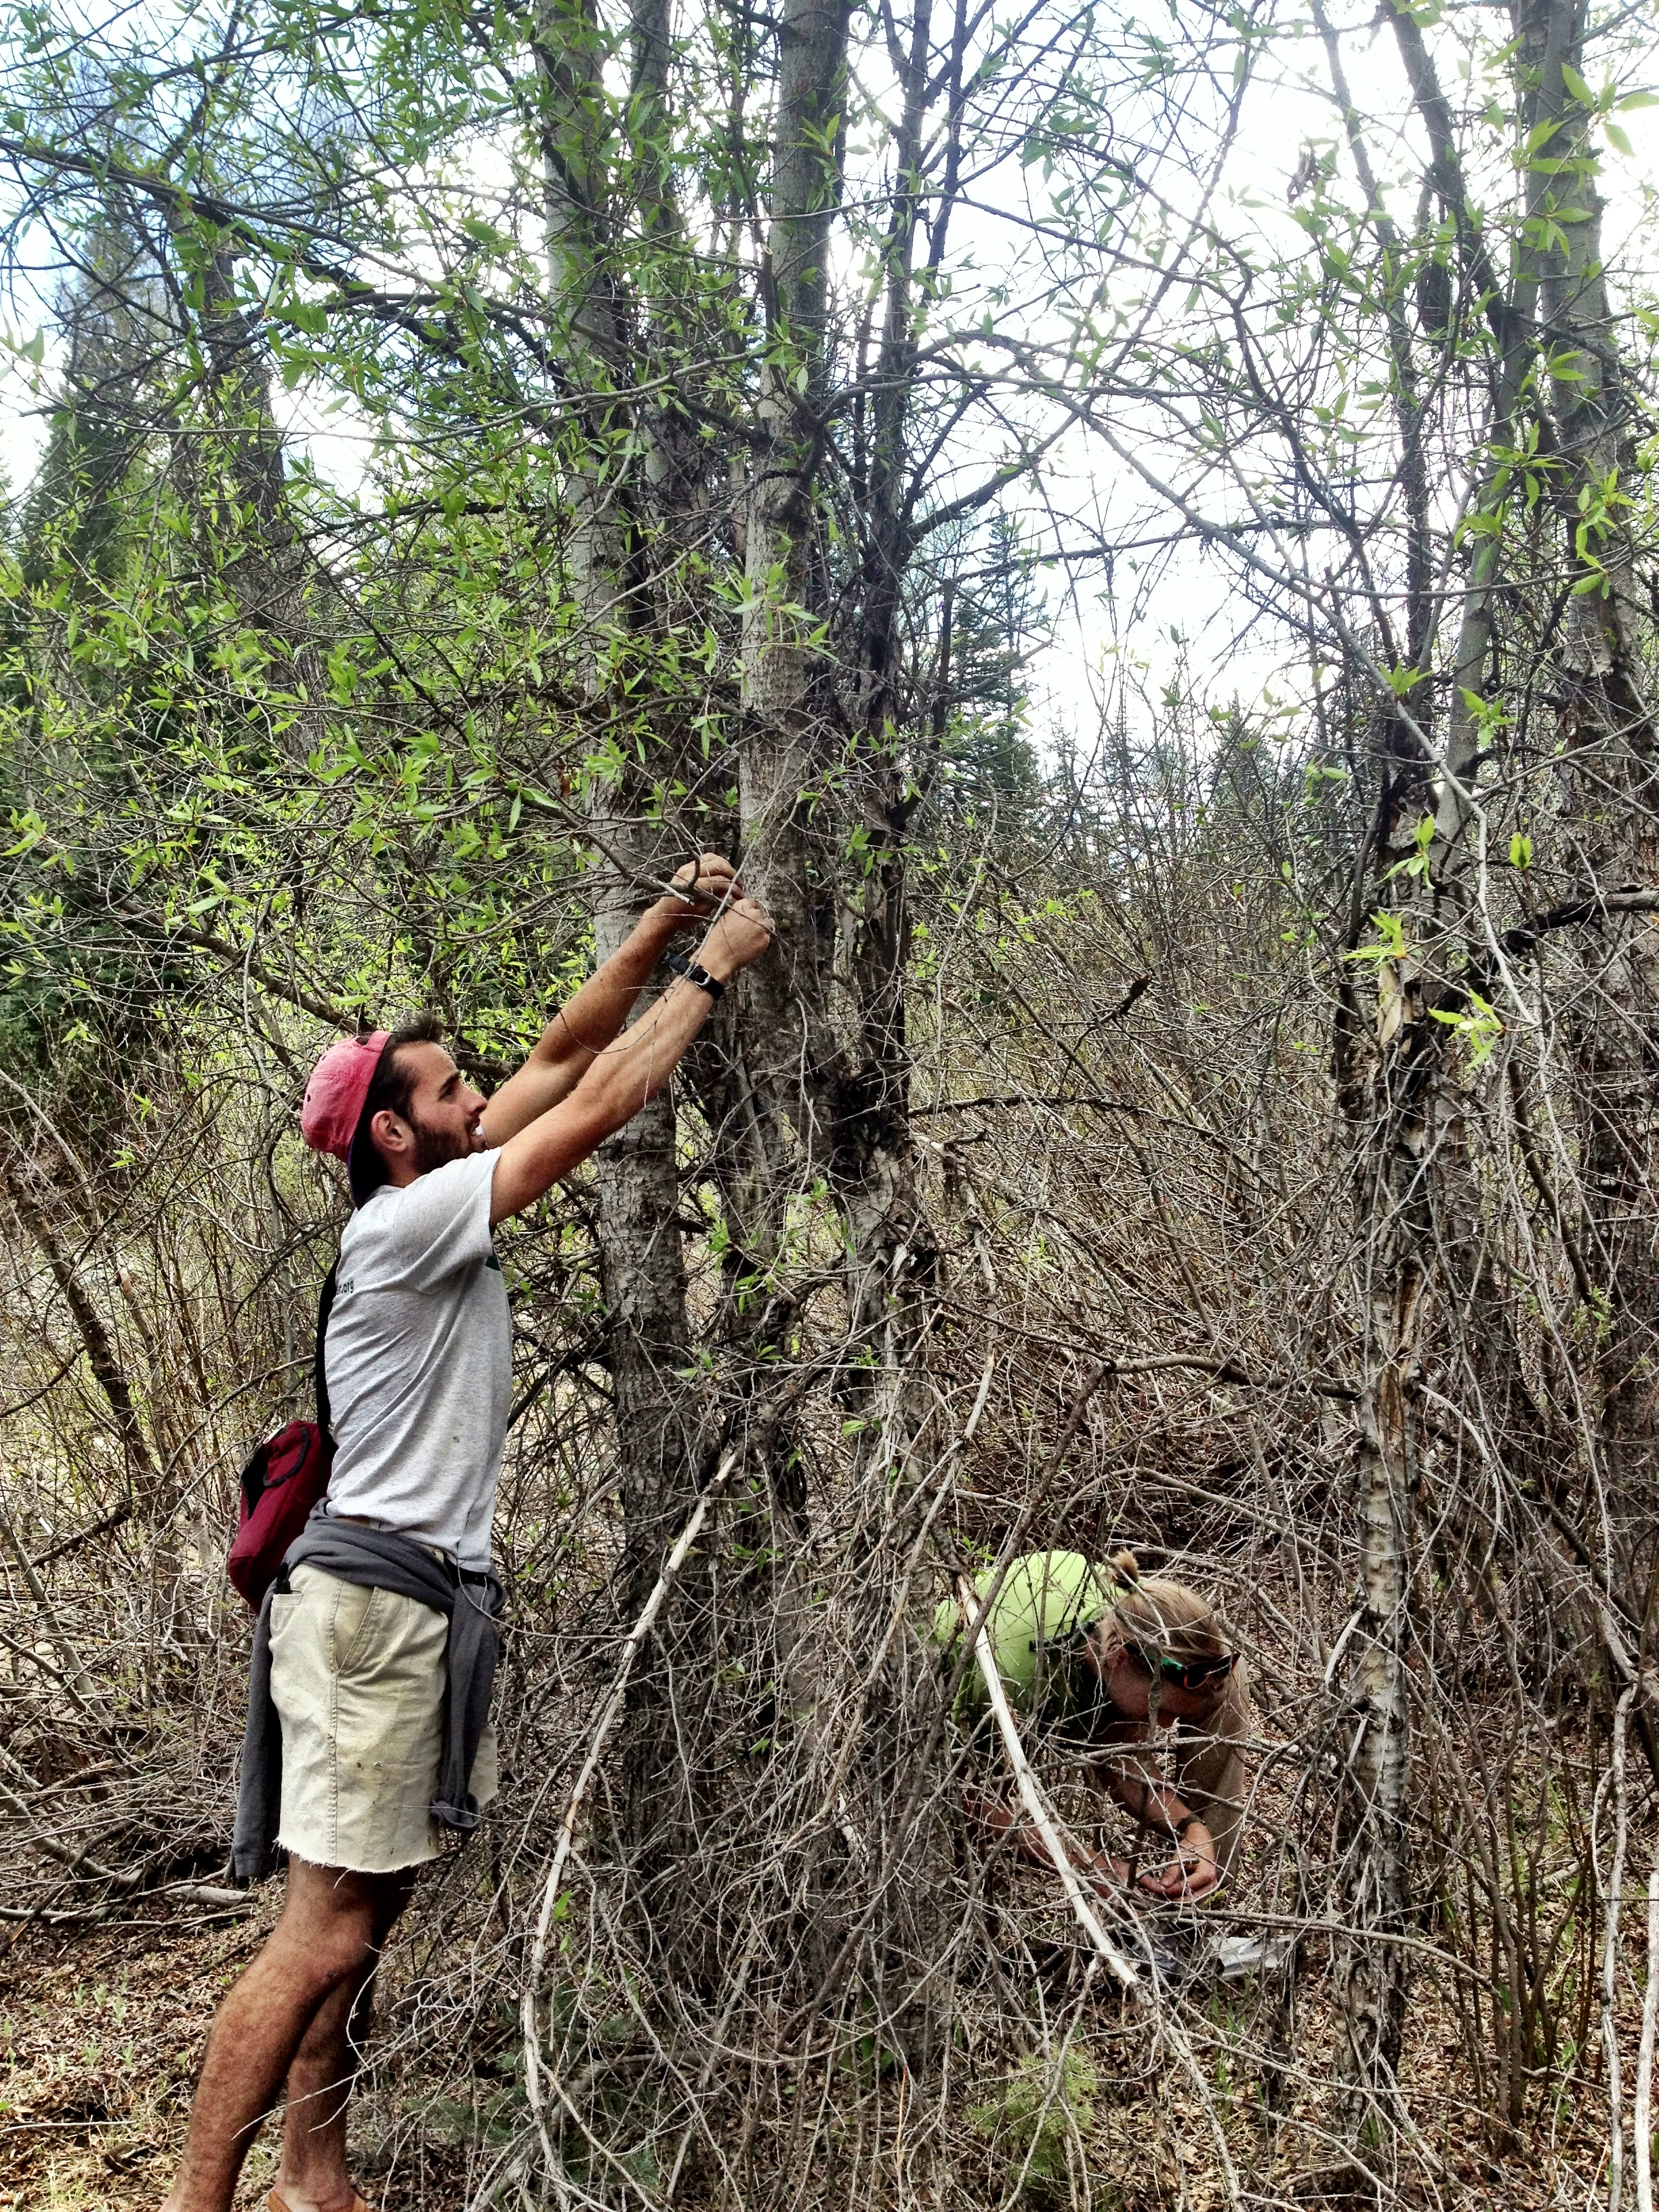 Sampling Populus angustifolia cuttings and soils in the wild. Photo credit: Ian Ware.